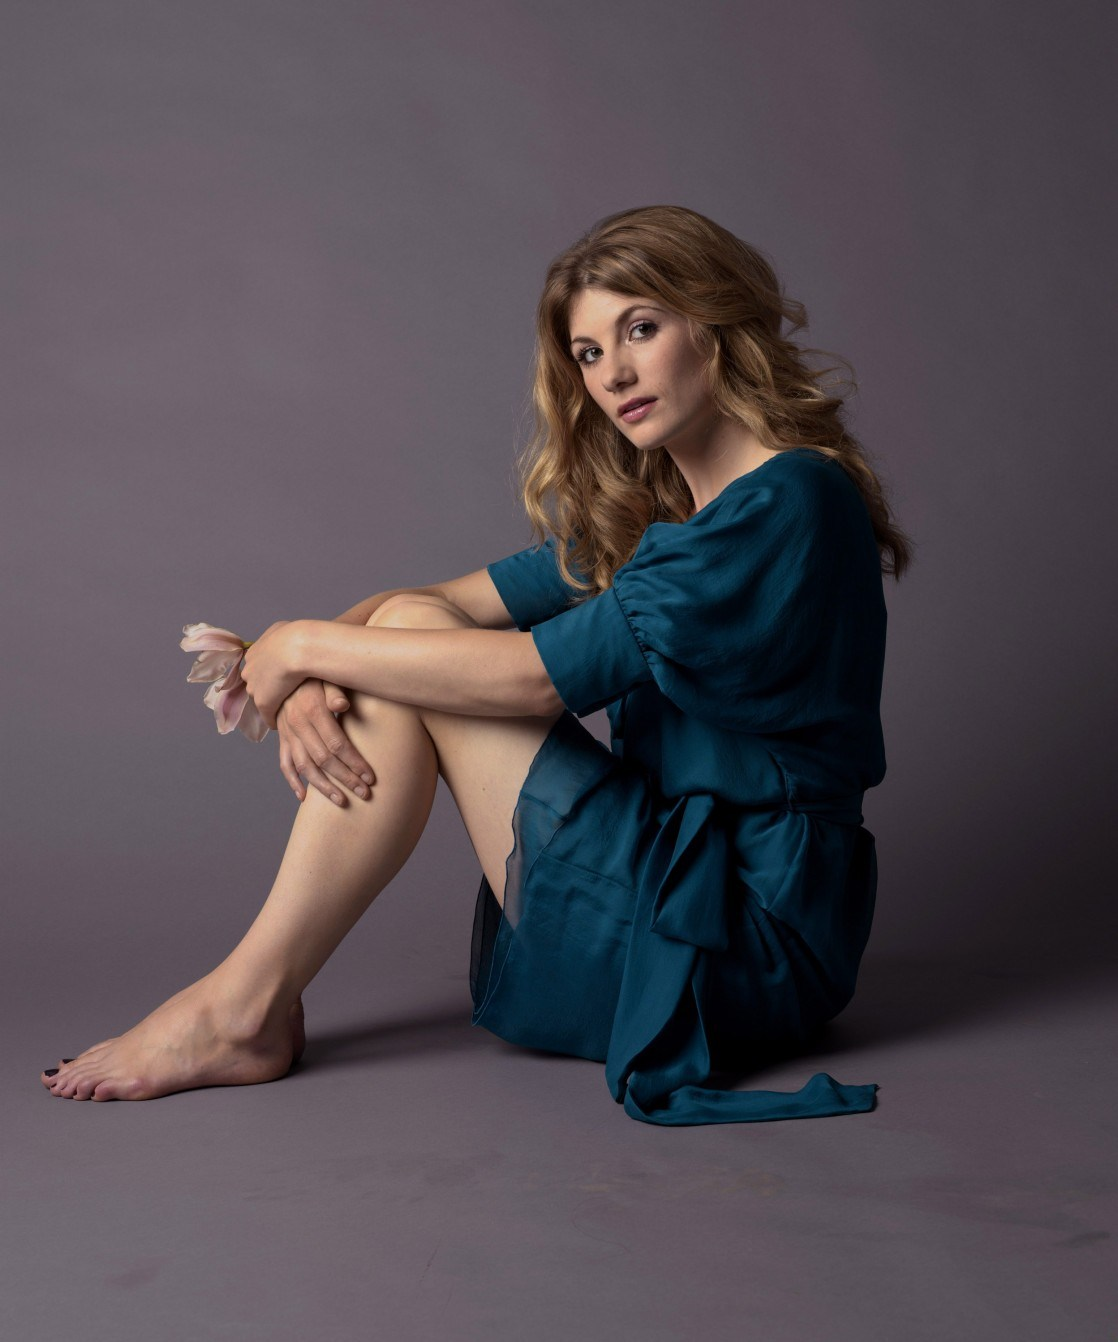 Feet Jodie Whittaker naked (66 photo), Tits, Paparazzi, Feet, swimsuit 2018